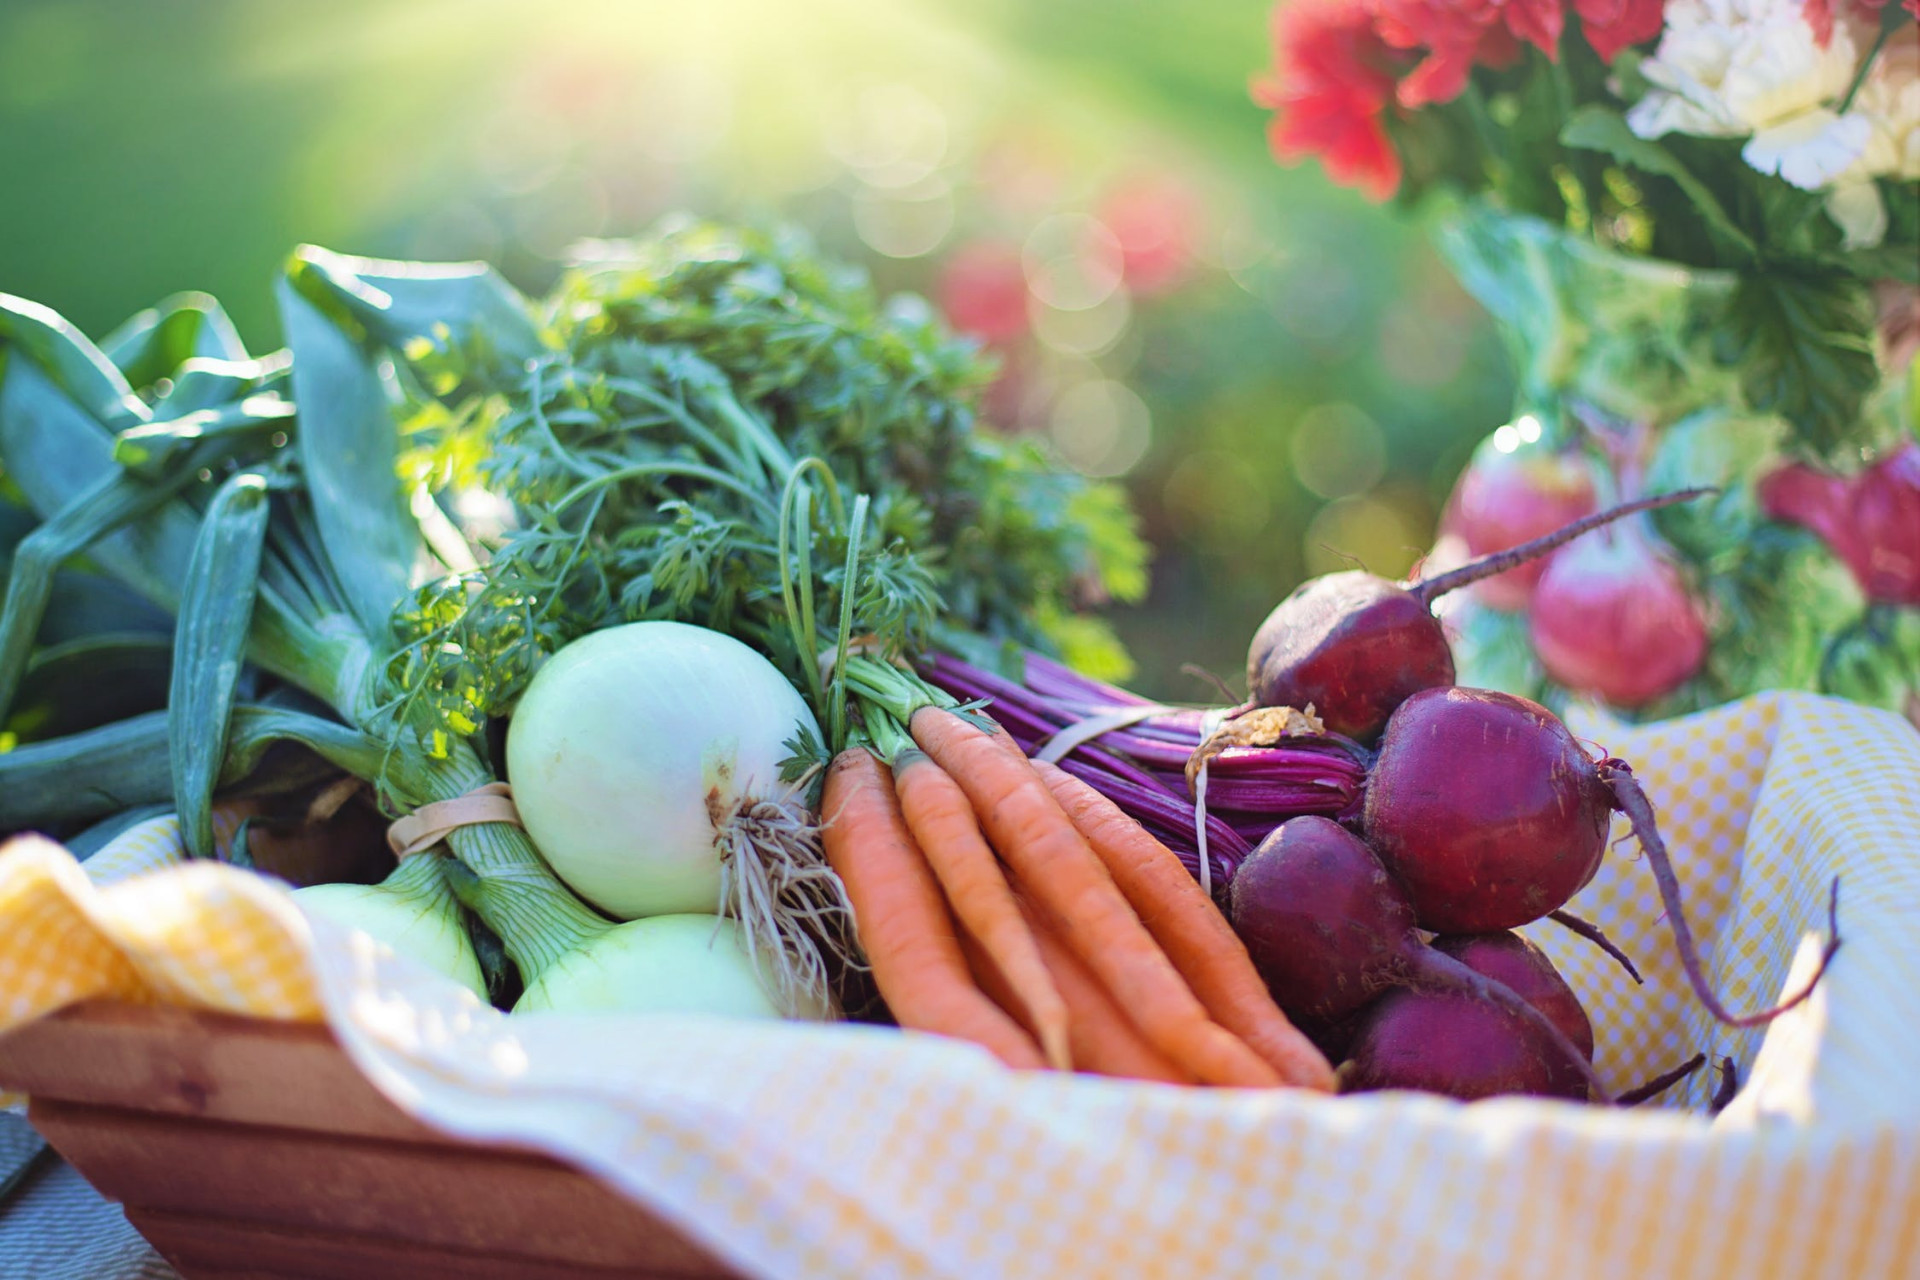 Are You an Absolute Beginner at Gardening? Start This Way